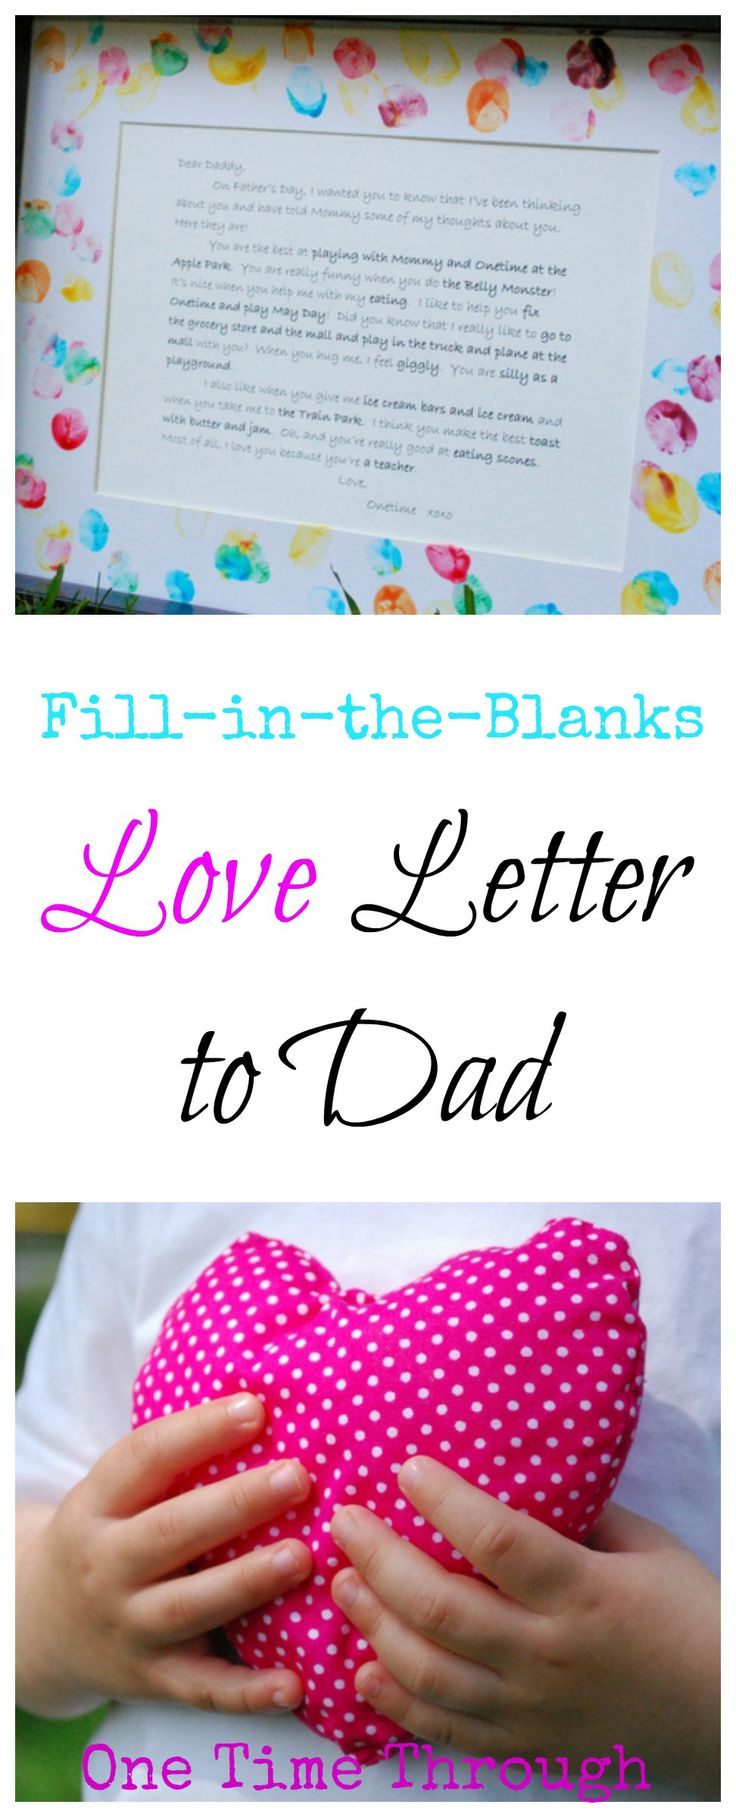 Best 25 letter to dad ideas on pinterest happy bday dad help your young child write a letter of love to dad for fathers day aljukfo Image collections